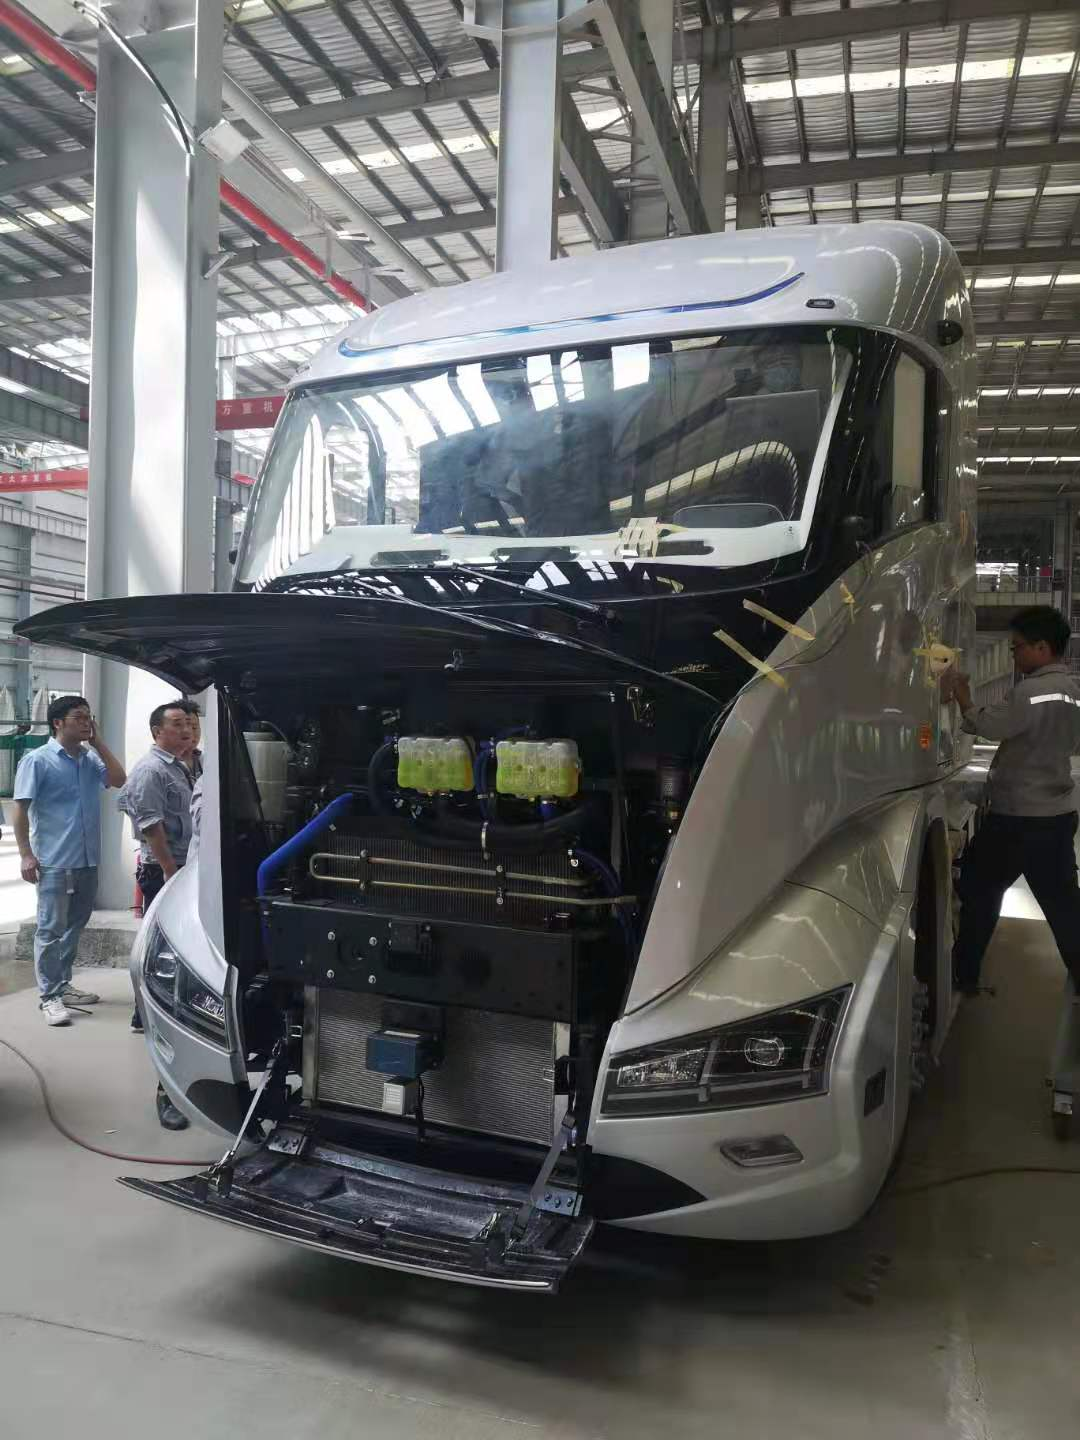 AsiaTimes: Hydrogen fuels a revolution in Chinese trucking.